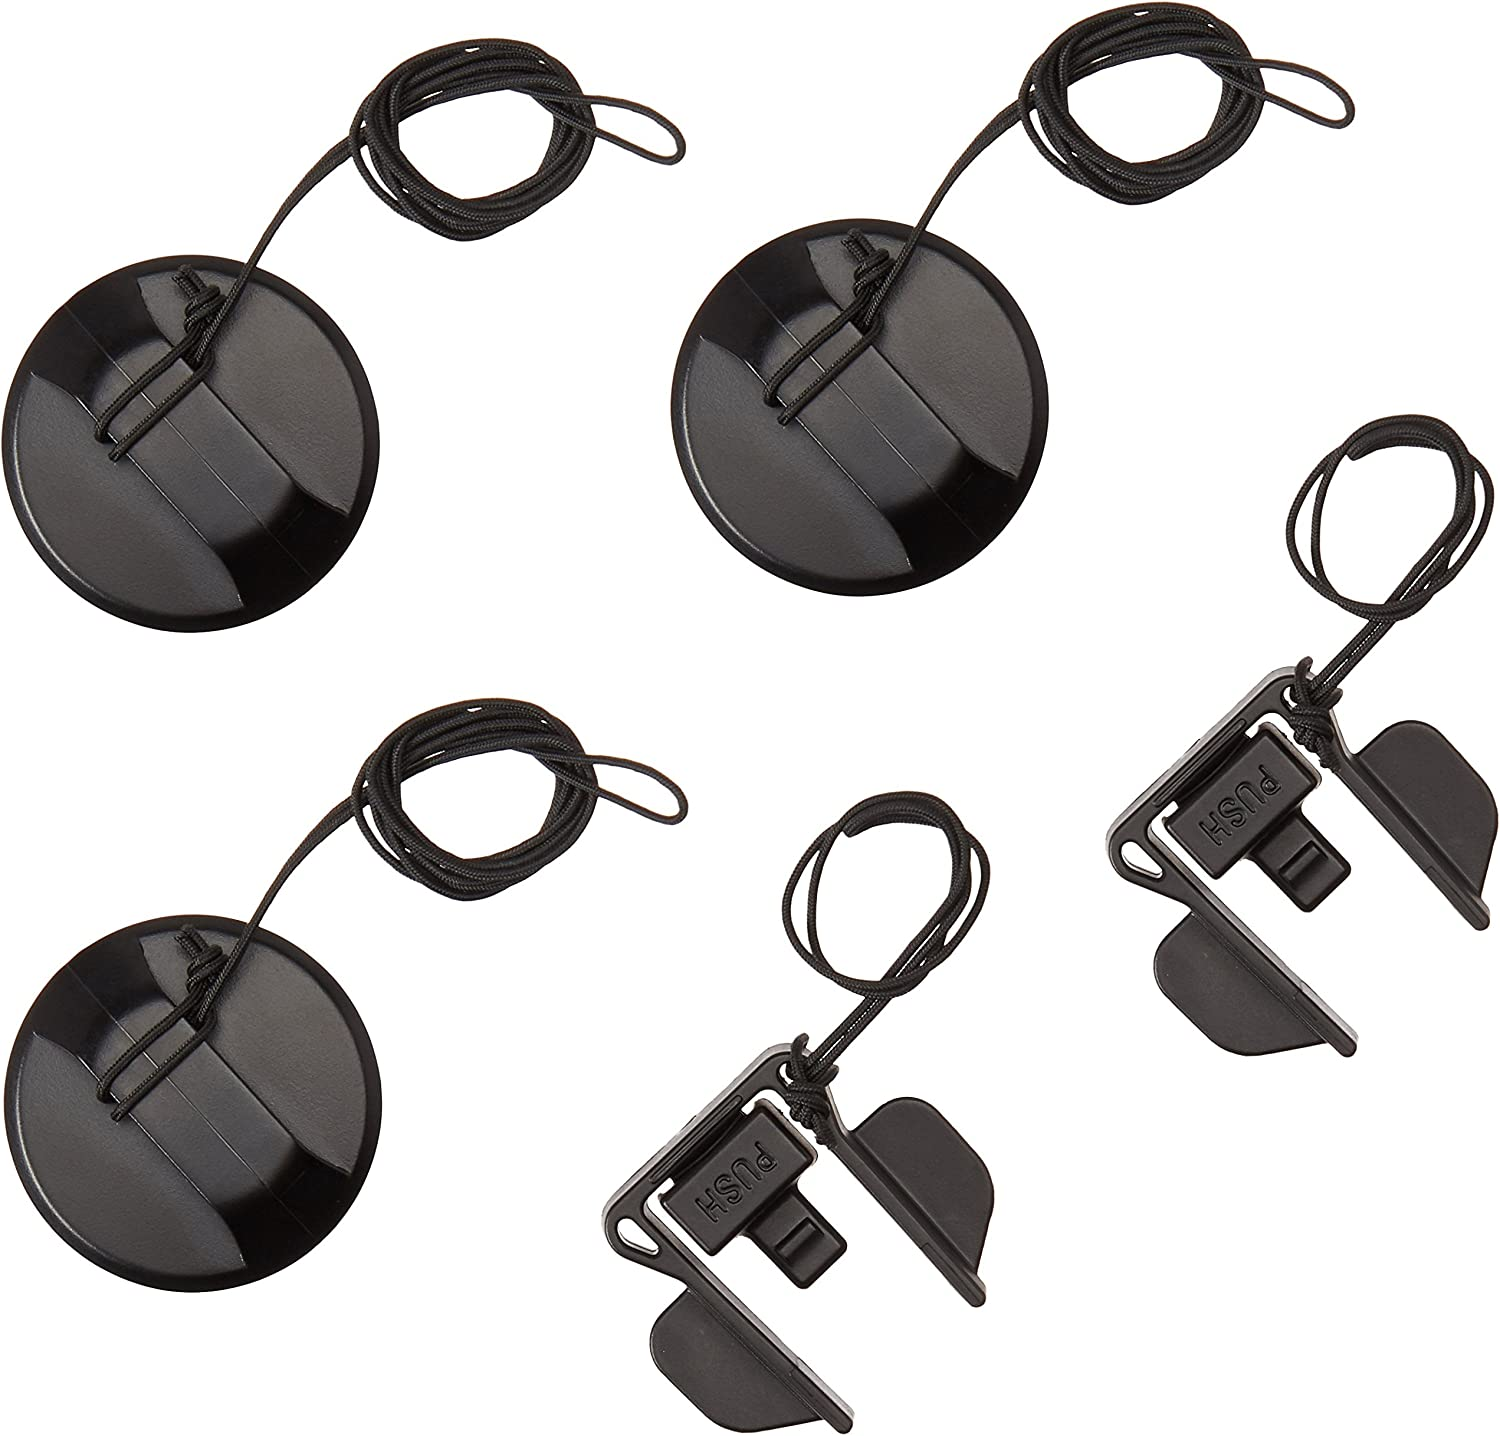 Black Sony AKALSP1 Camera Leash Pack